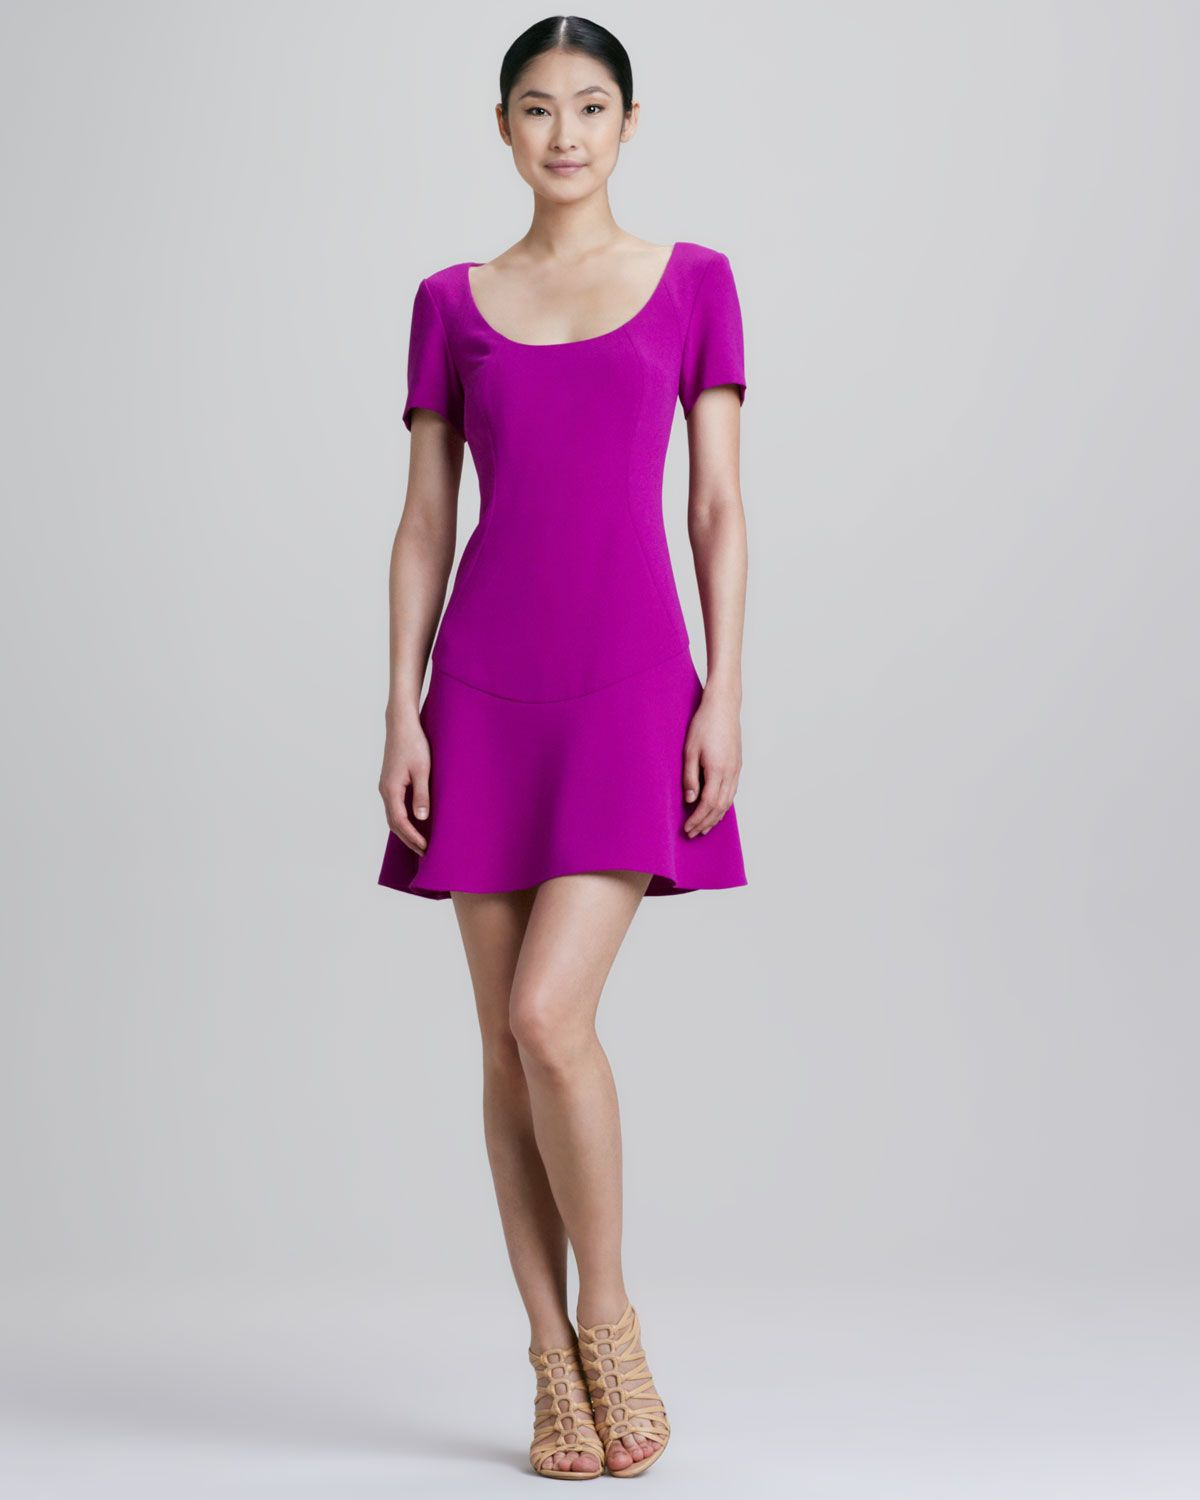 Httpncrnirachel roy mini fitandflare dress p 2412ml rachel roy mini fit and flare dress neiman marcus ombrellifo Image collections